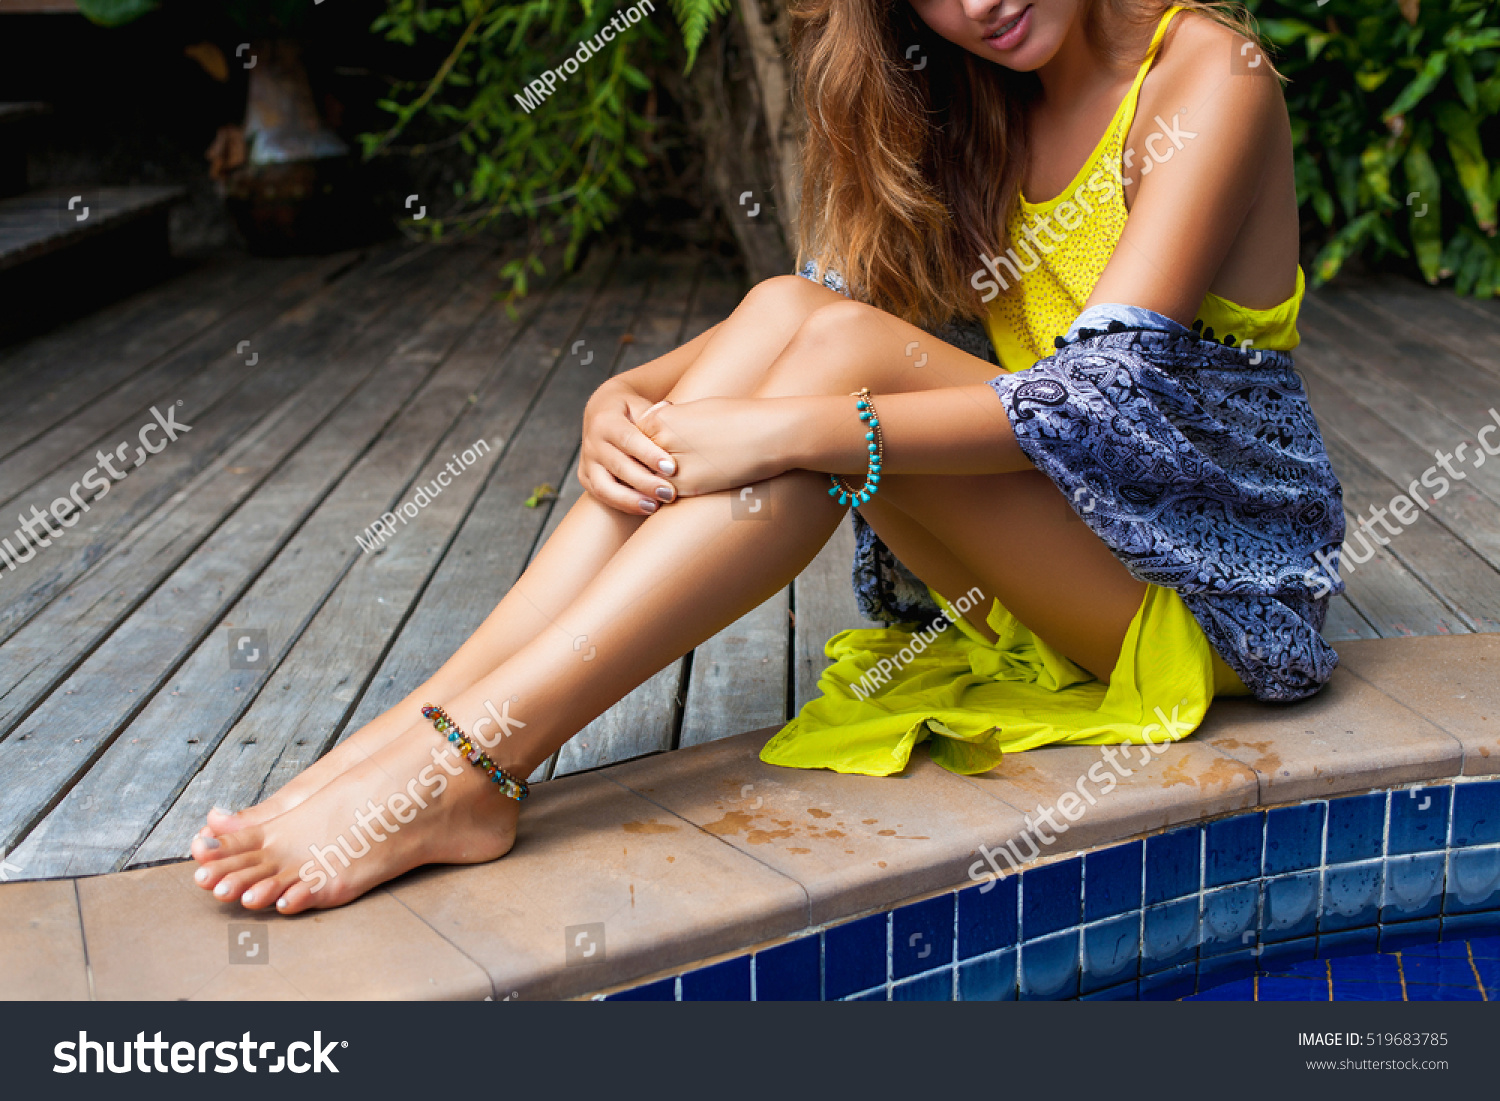 young beautiful woman sitting at pool in yellow boho dress, summer trend  fashion, sexy